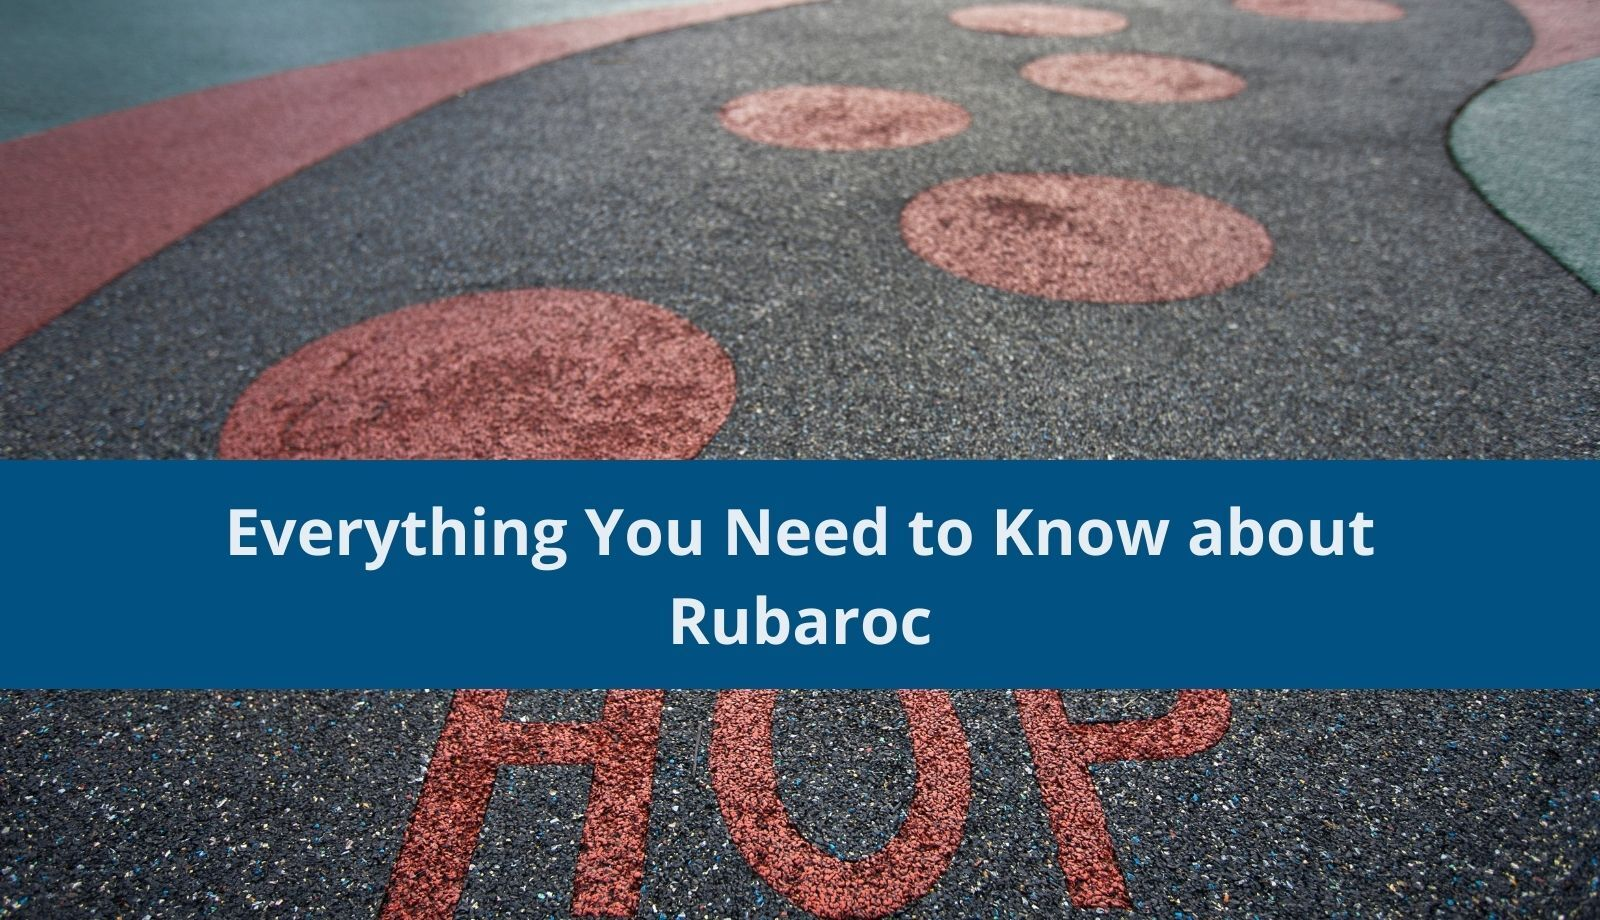 Everything You Need to Know about Rubaroc